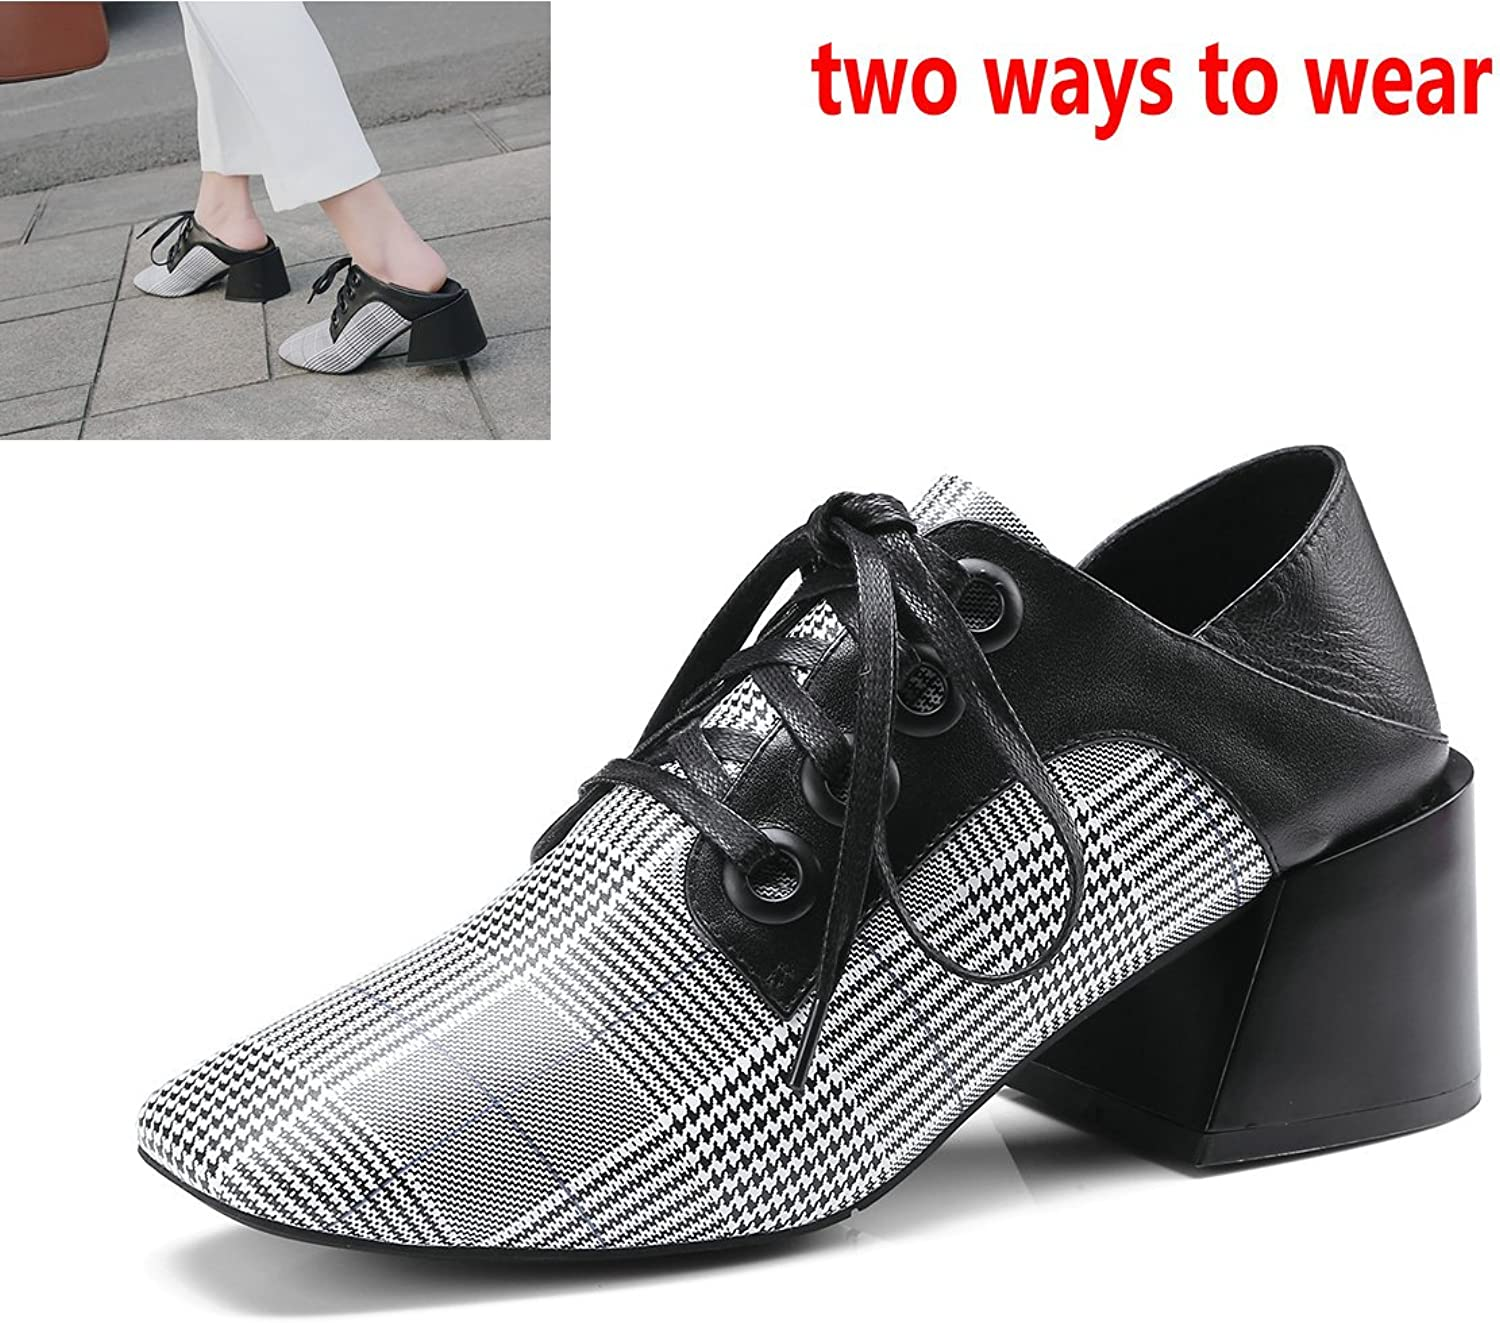 AnMengXinLing Women Oxford shoes Dress Square Toe Lace up Loafer shoes with Thick Mid Heel